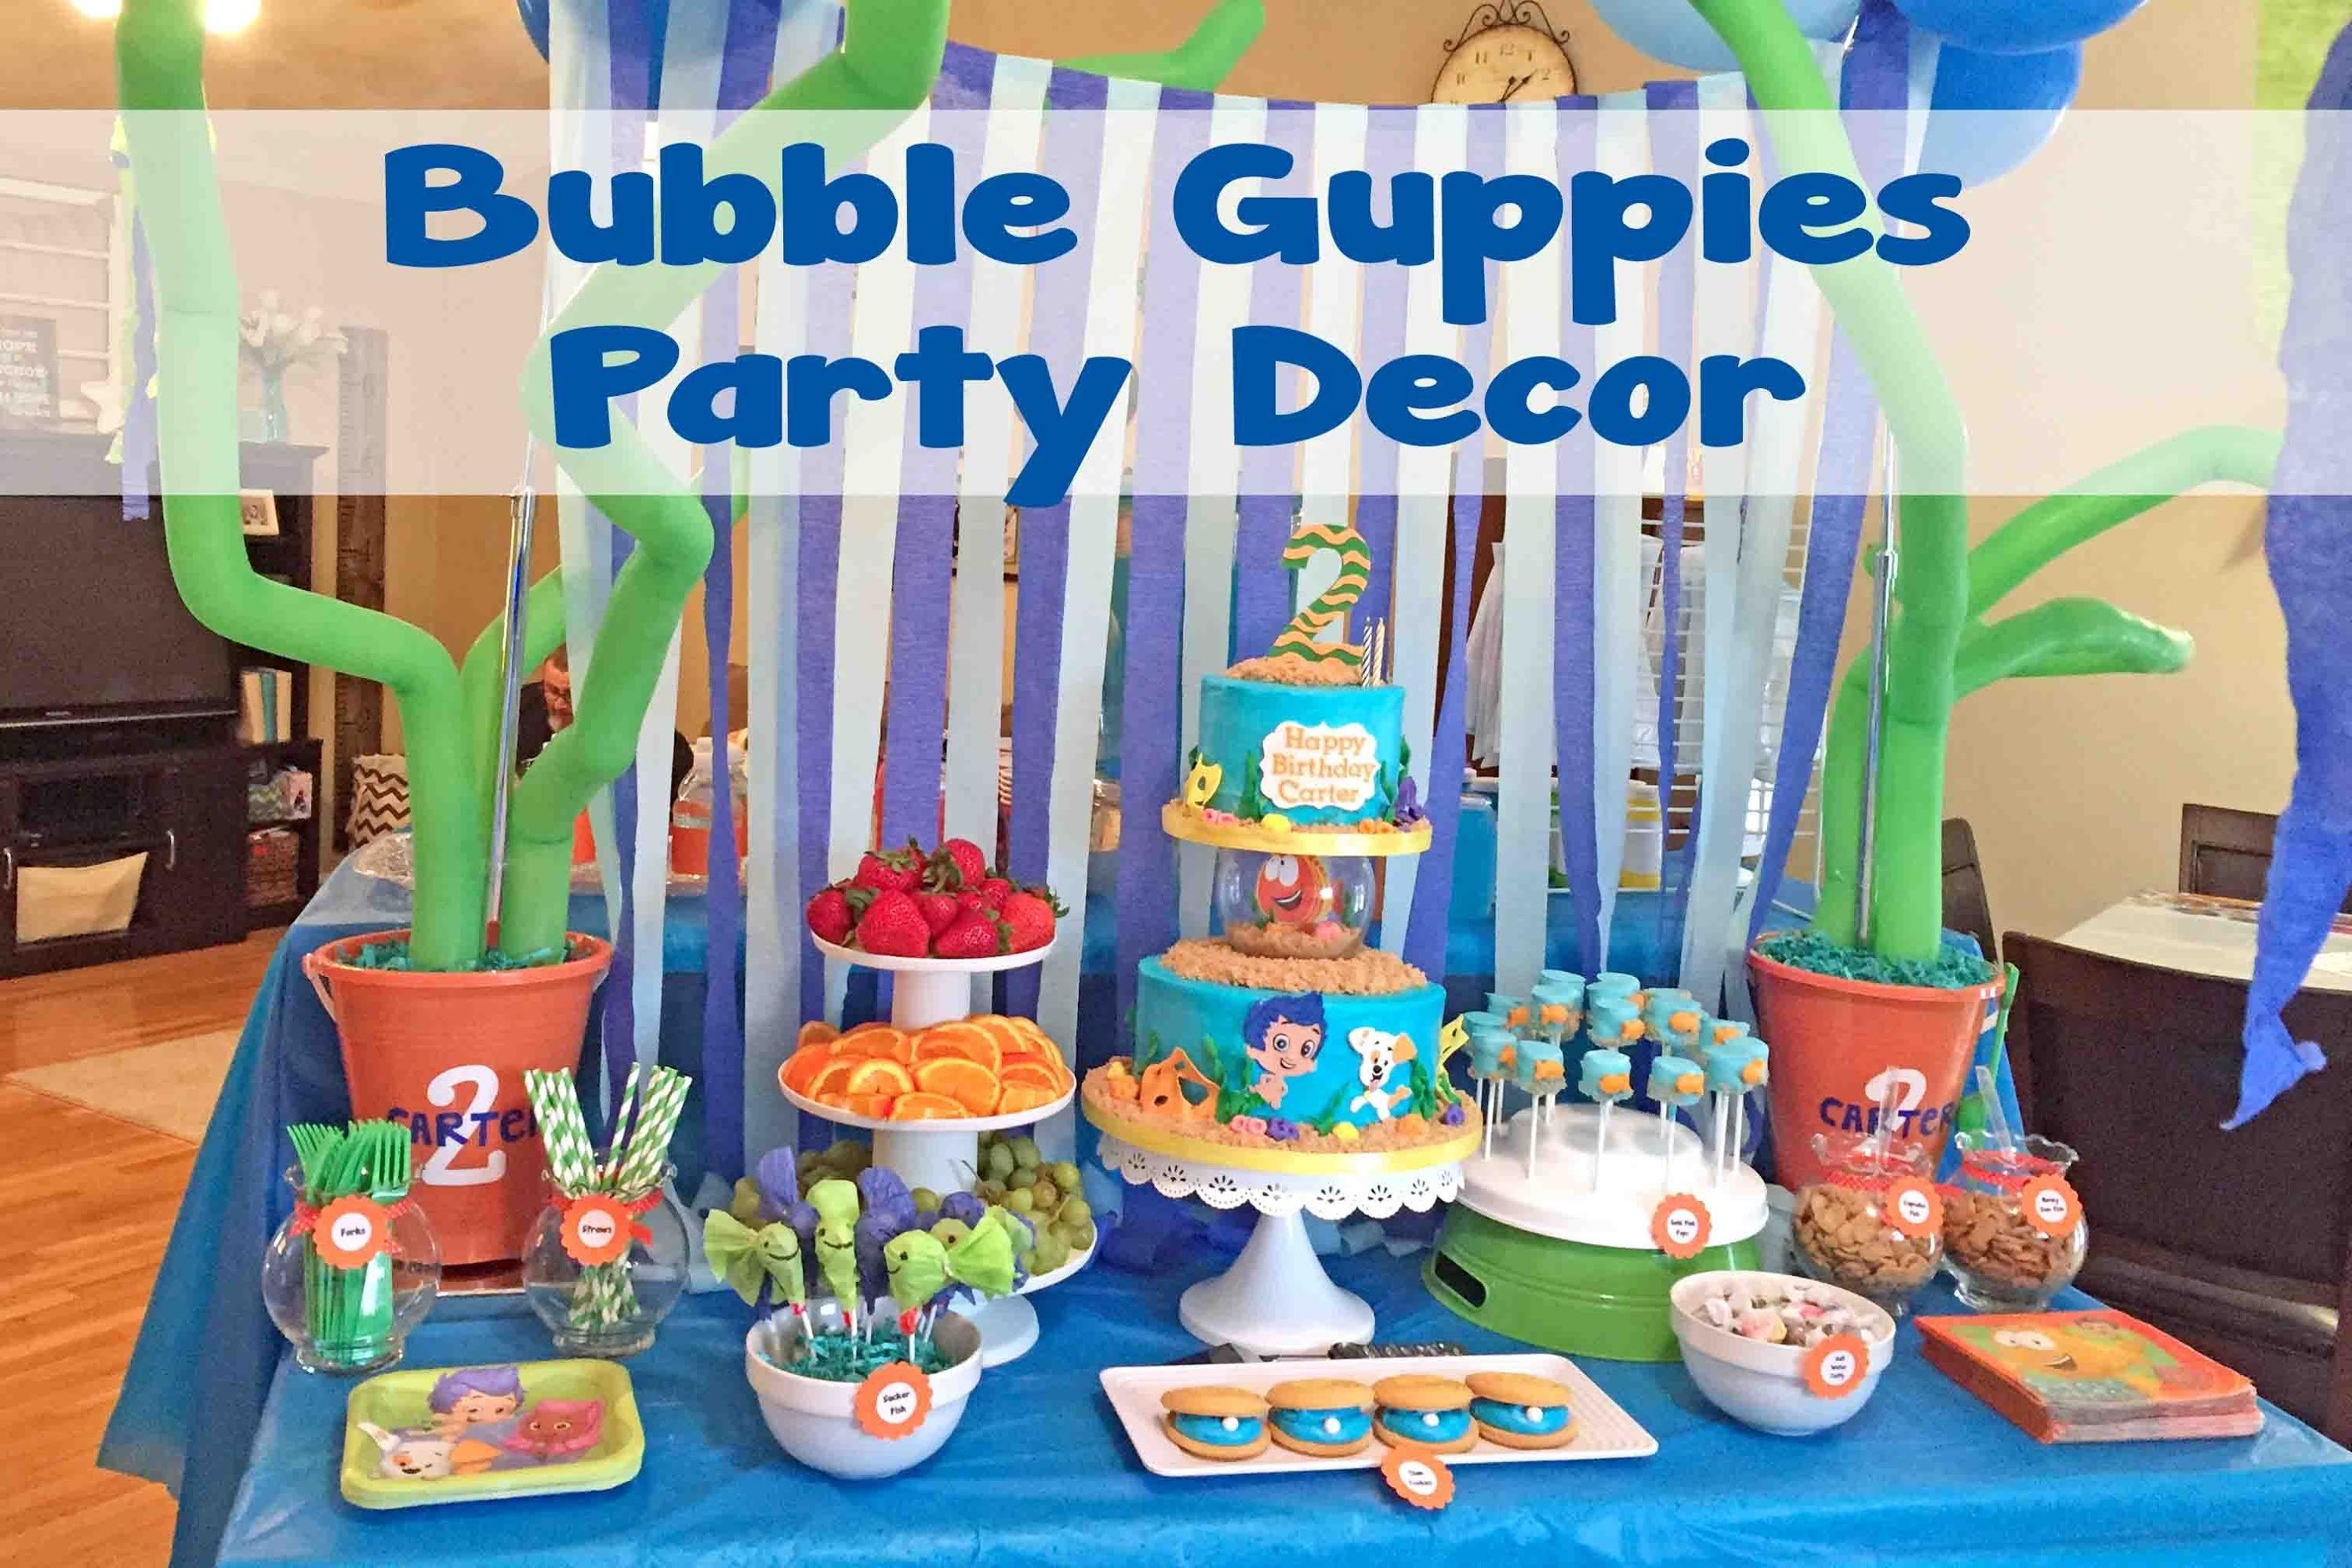 10 Fashionable Bubble Guppie Birthday Party Ideas bubble guppies under the sea party decor 48 youtube 3